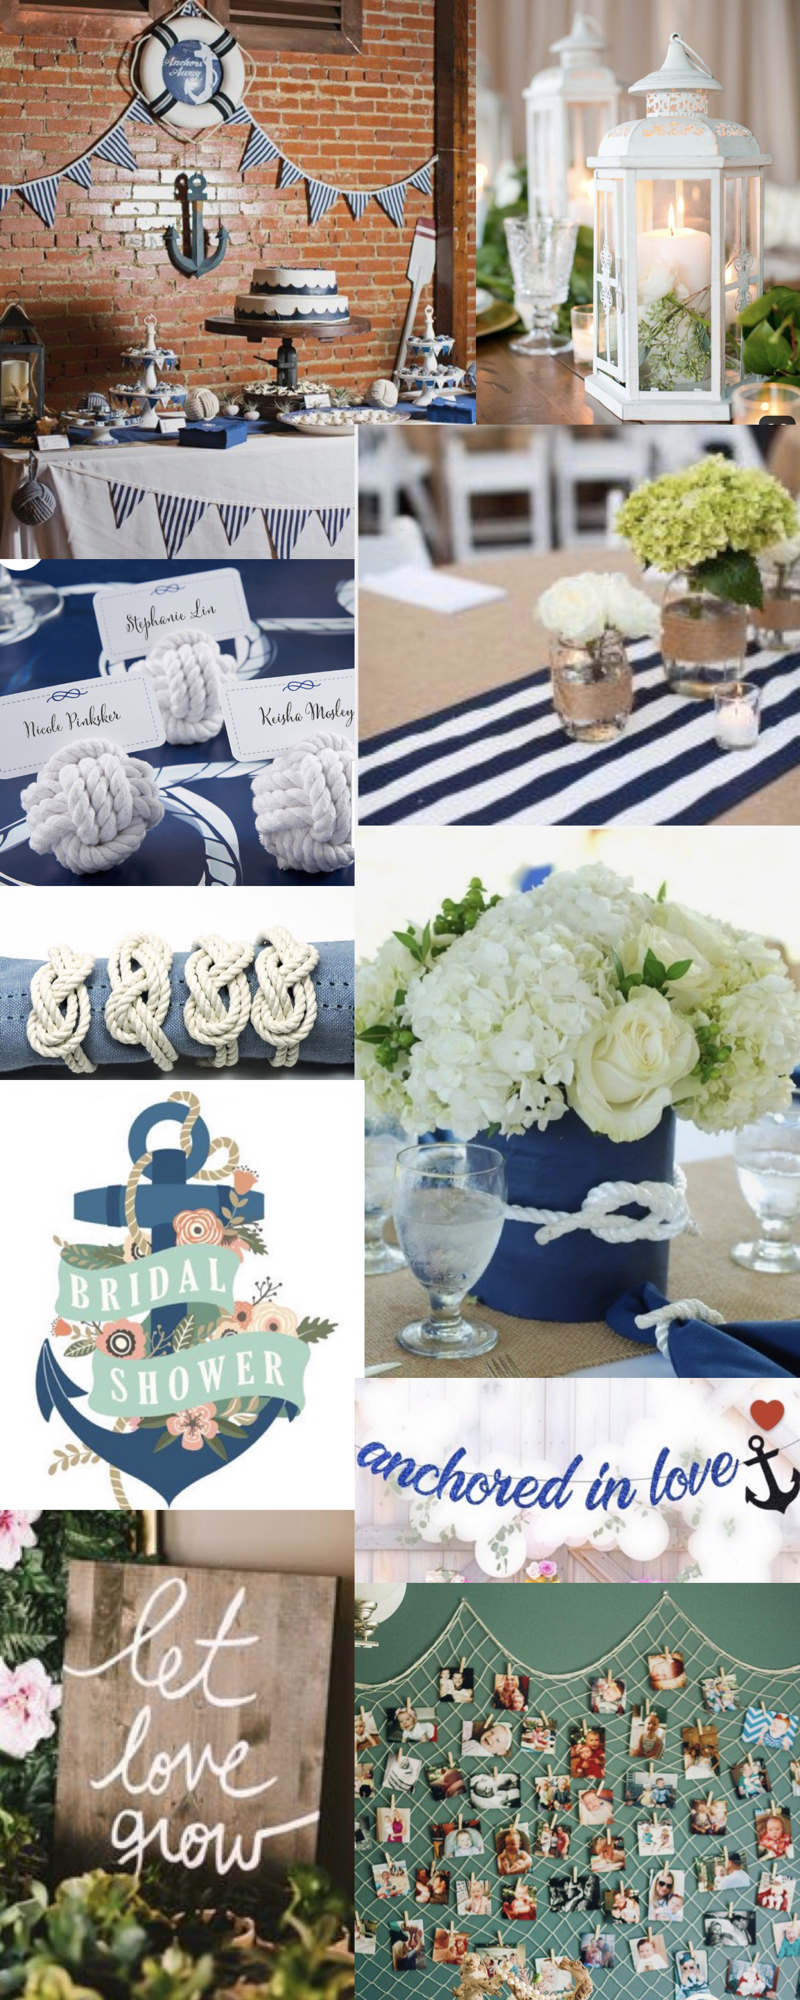 My Nautical Themed Bridal Shower Mood Board In 2020 Nautical Theme Bridal Shower Nautical Bridal Shower Decorations Bridal Shower Theme